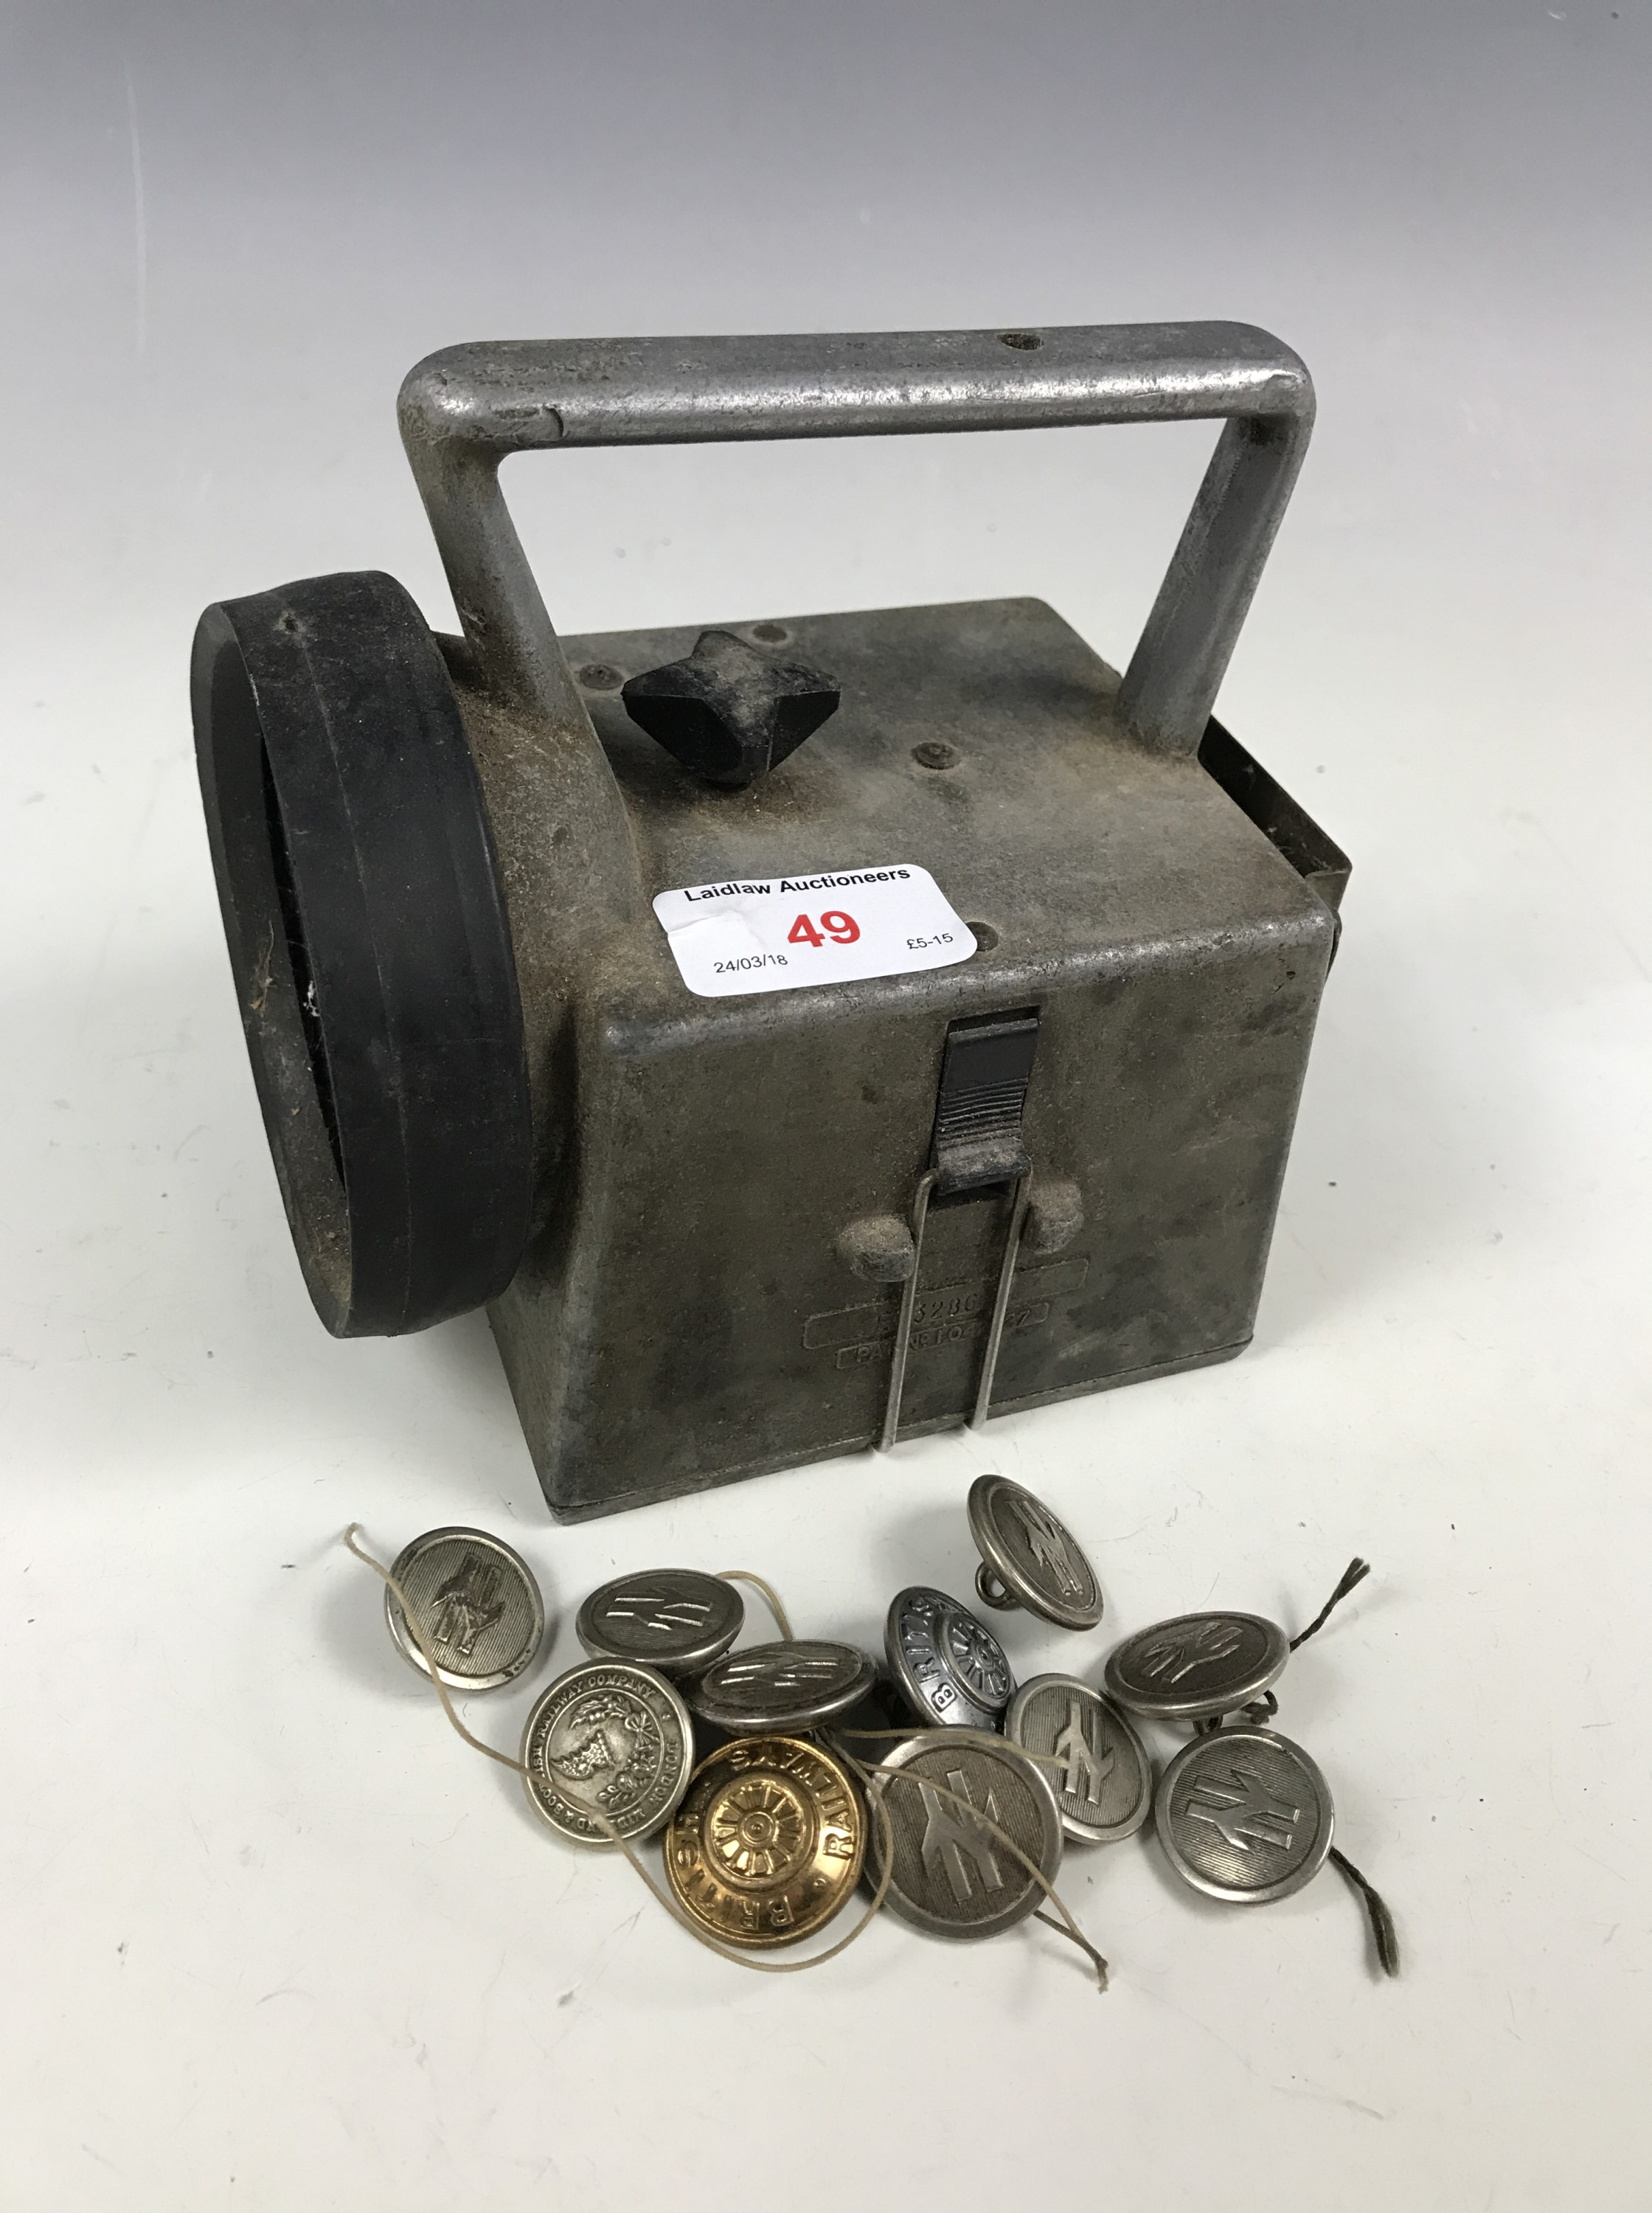 Lot 49 - A British Rail lamp and buttons